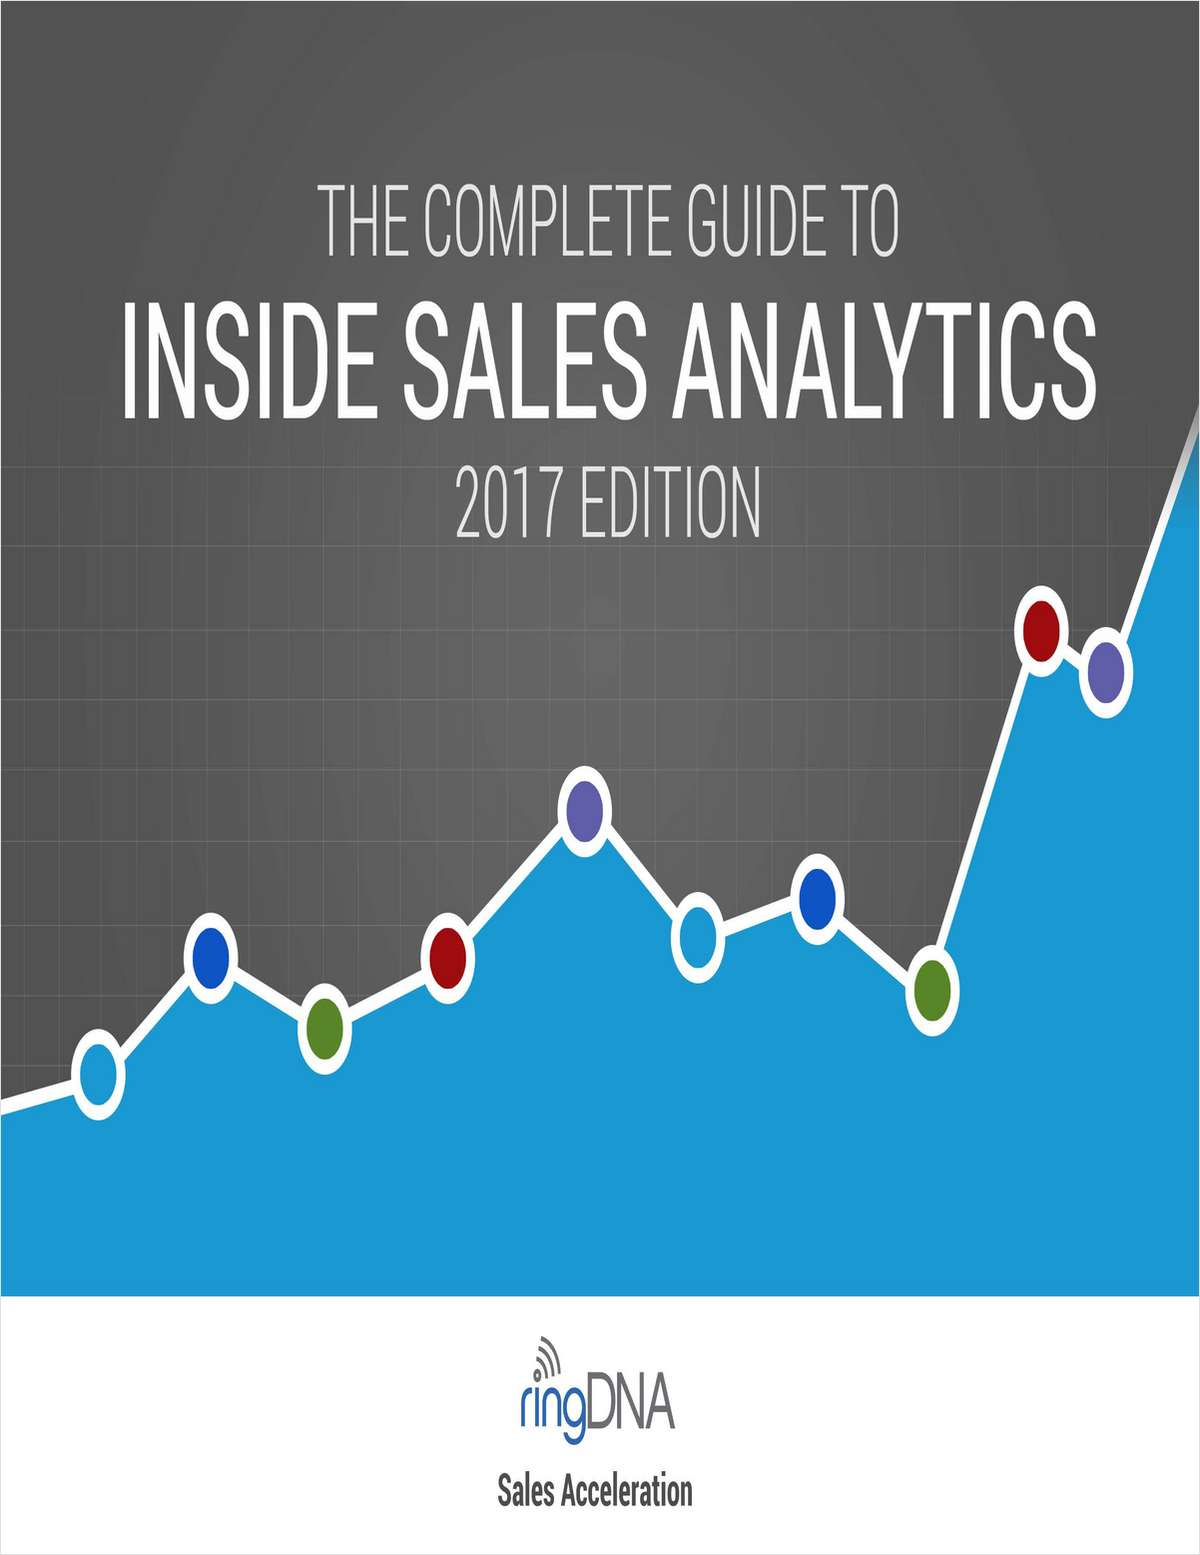 The Complete Guide to Inside Sales Analytics 2017 Edition